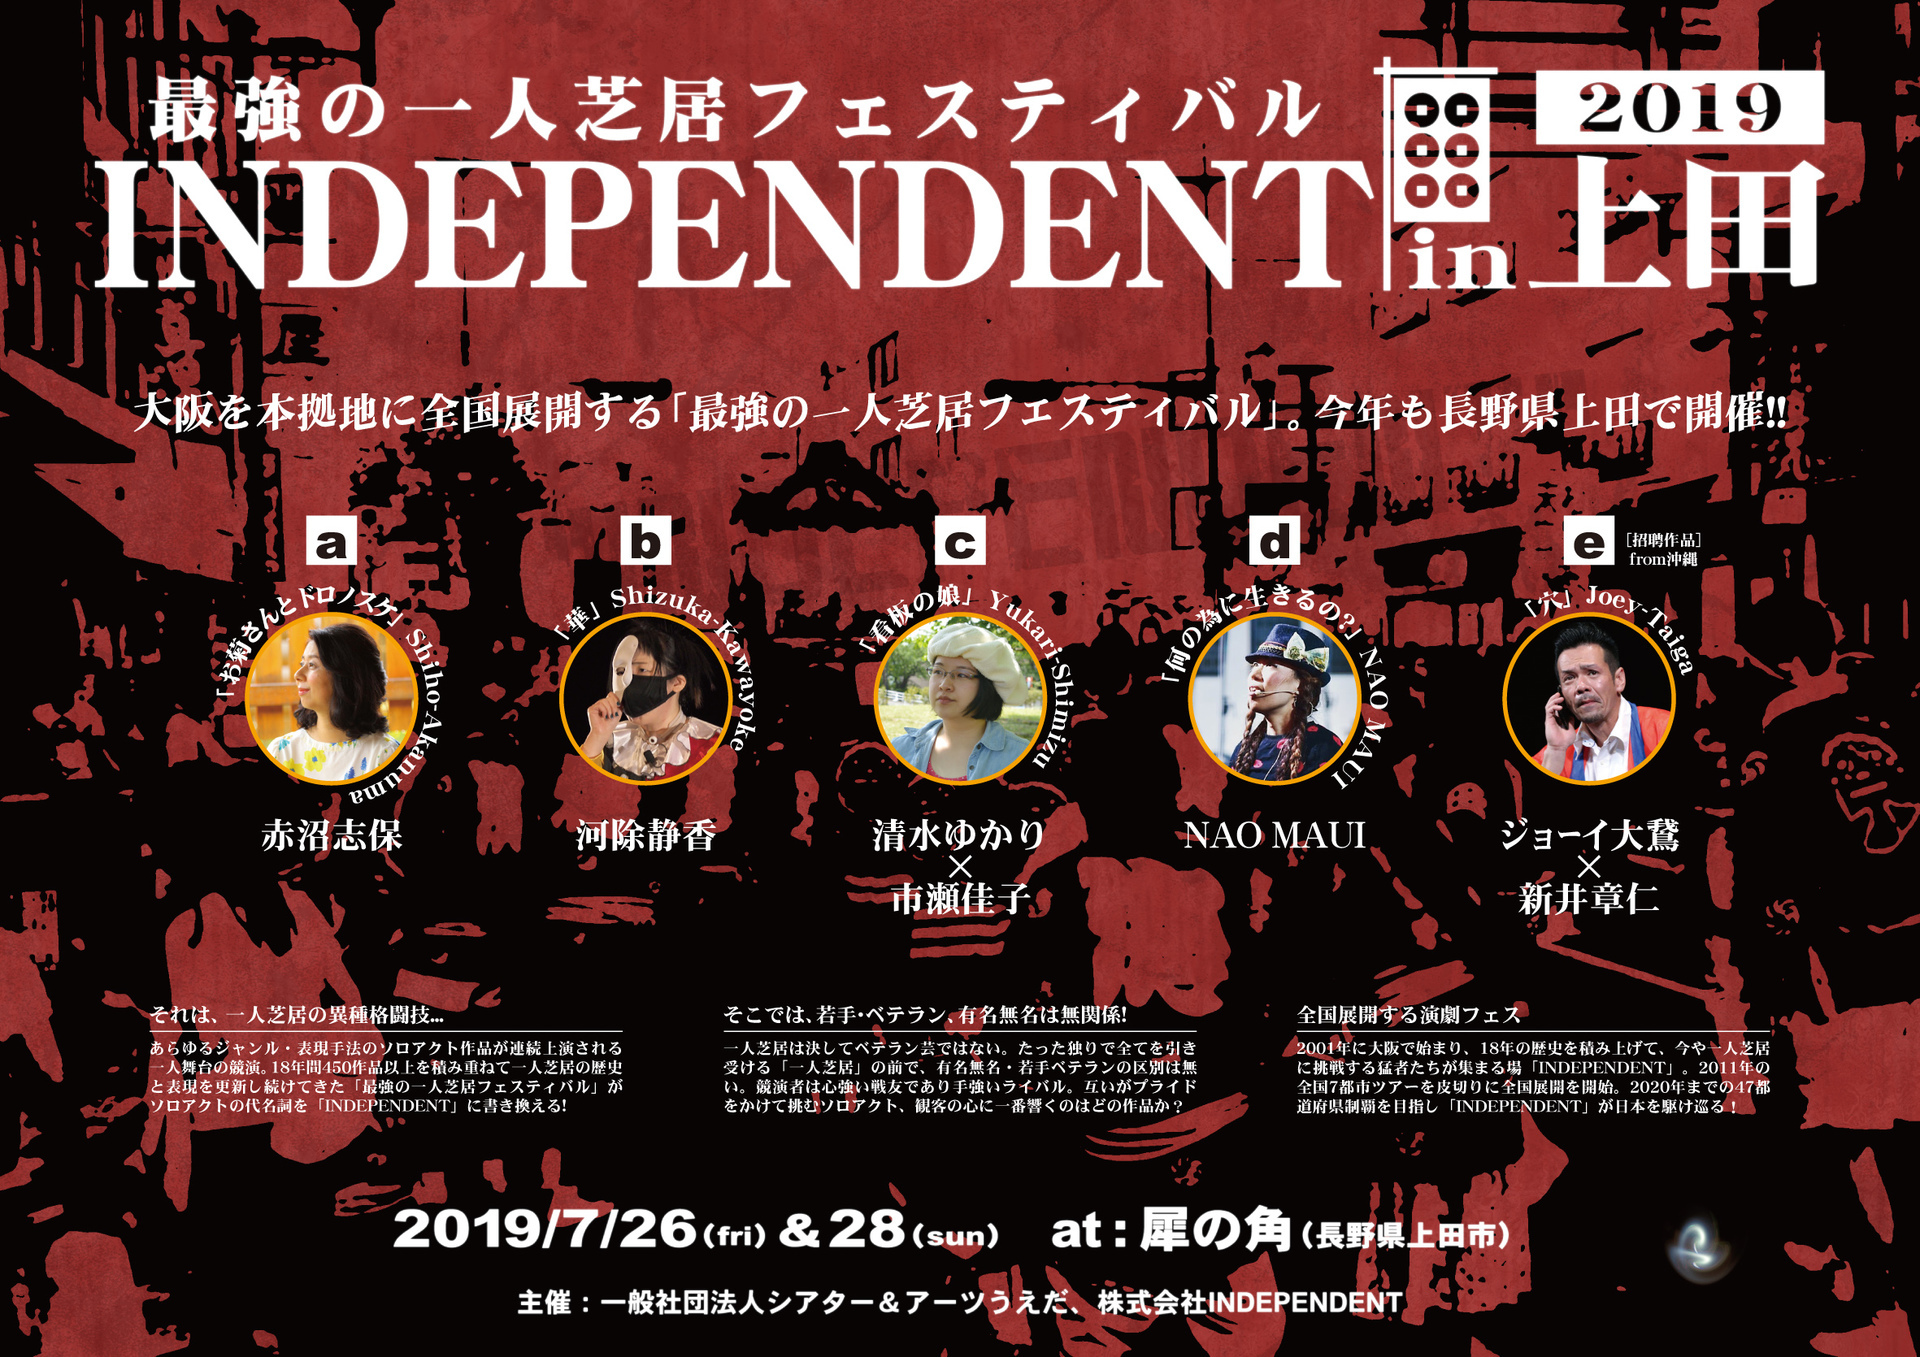 INDEPENDENT in 上田 2019